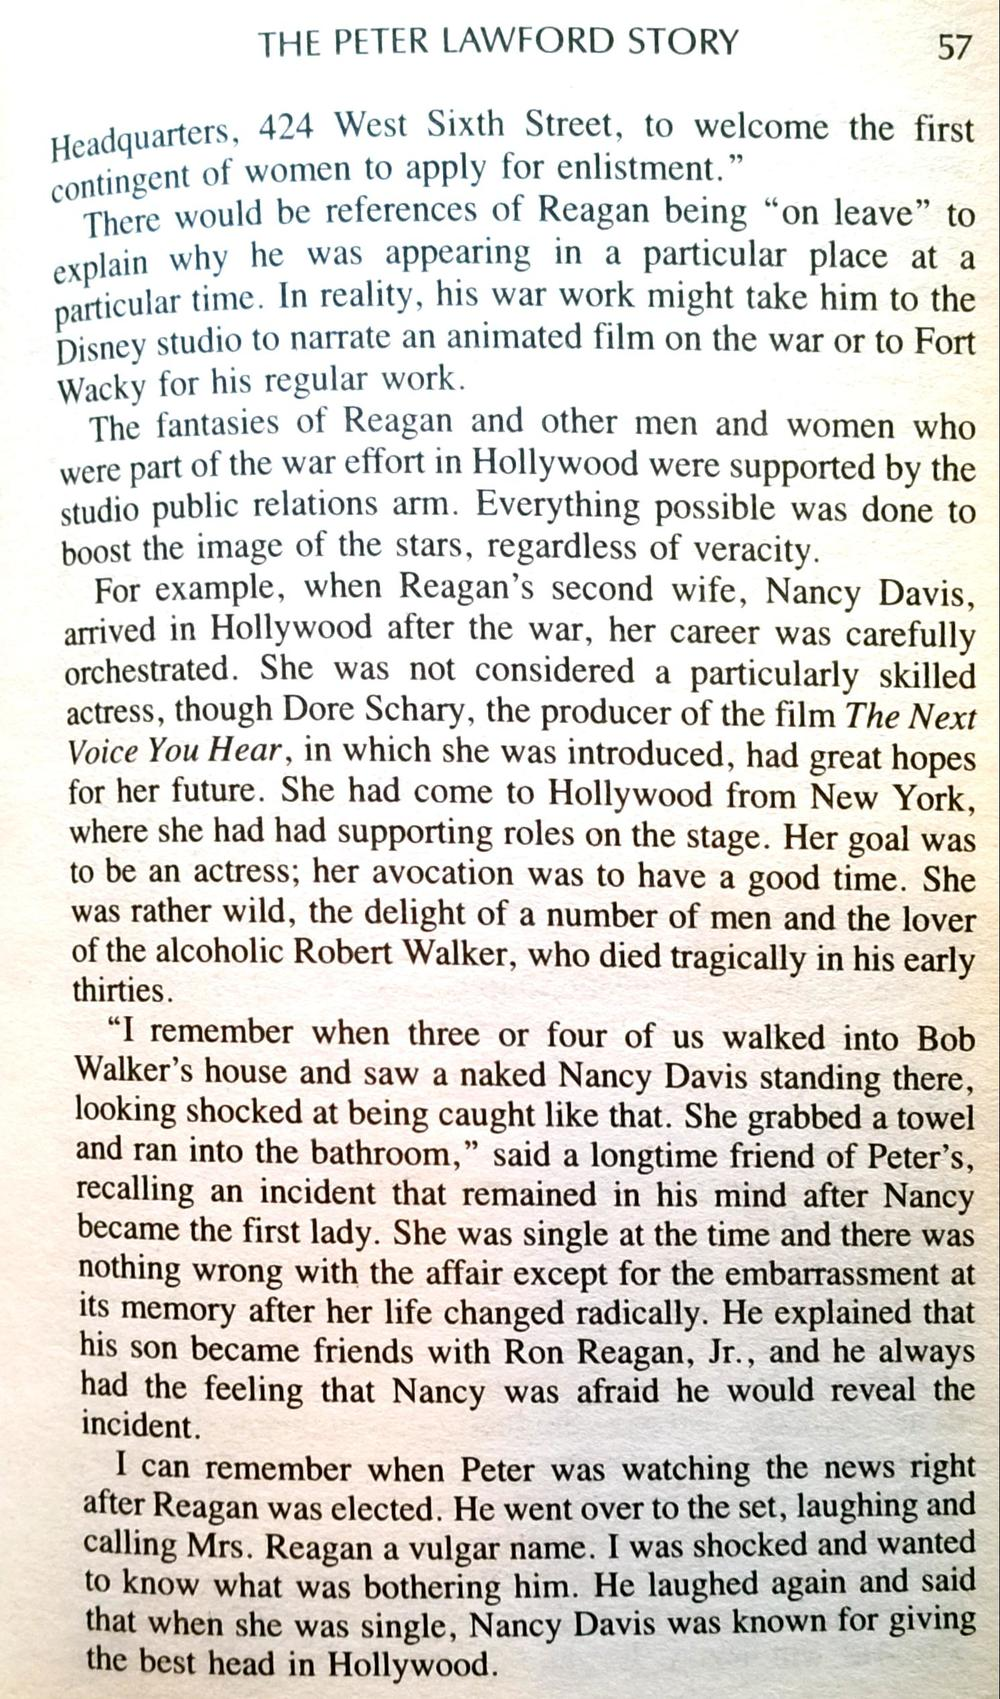 Page 57 of The Peter Lawford Story